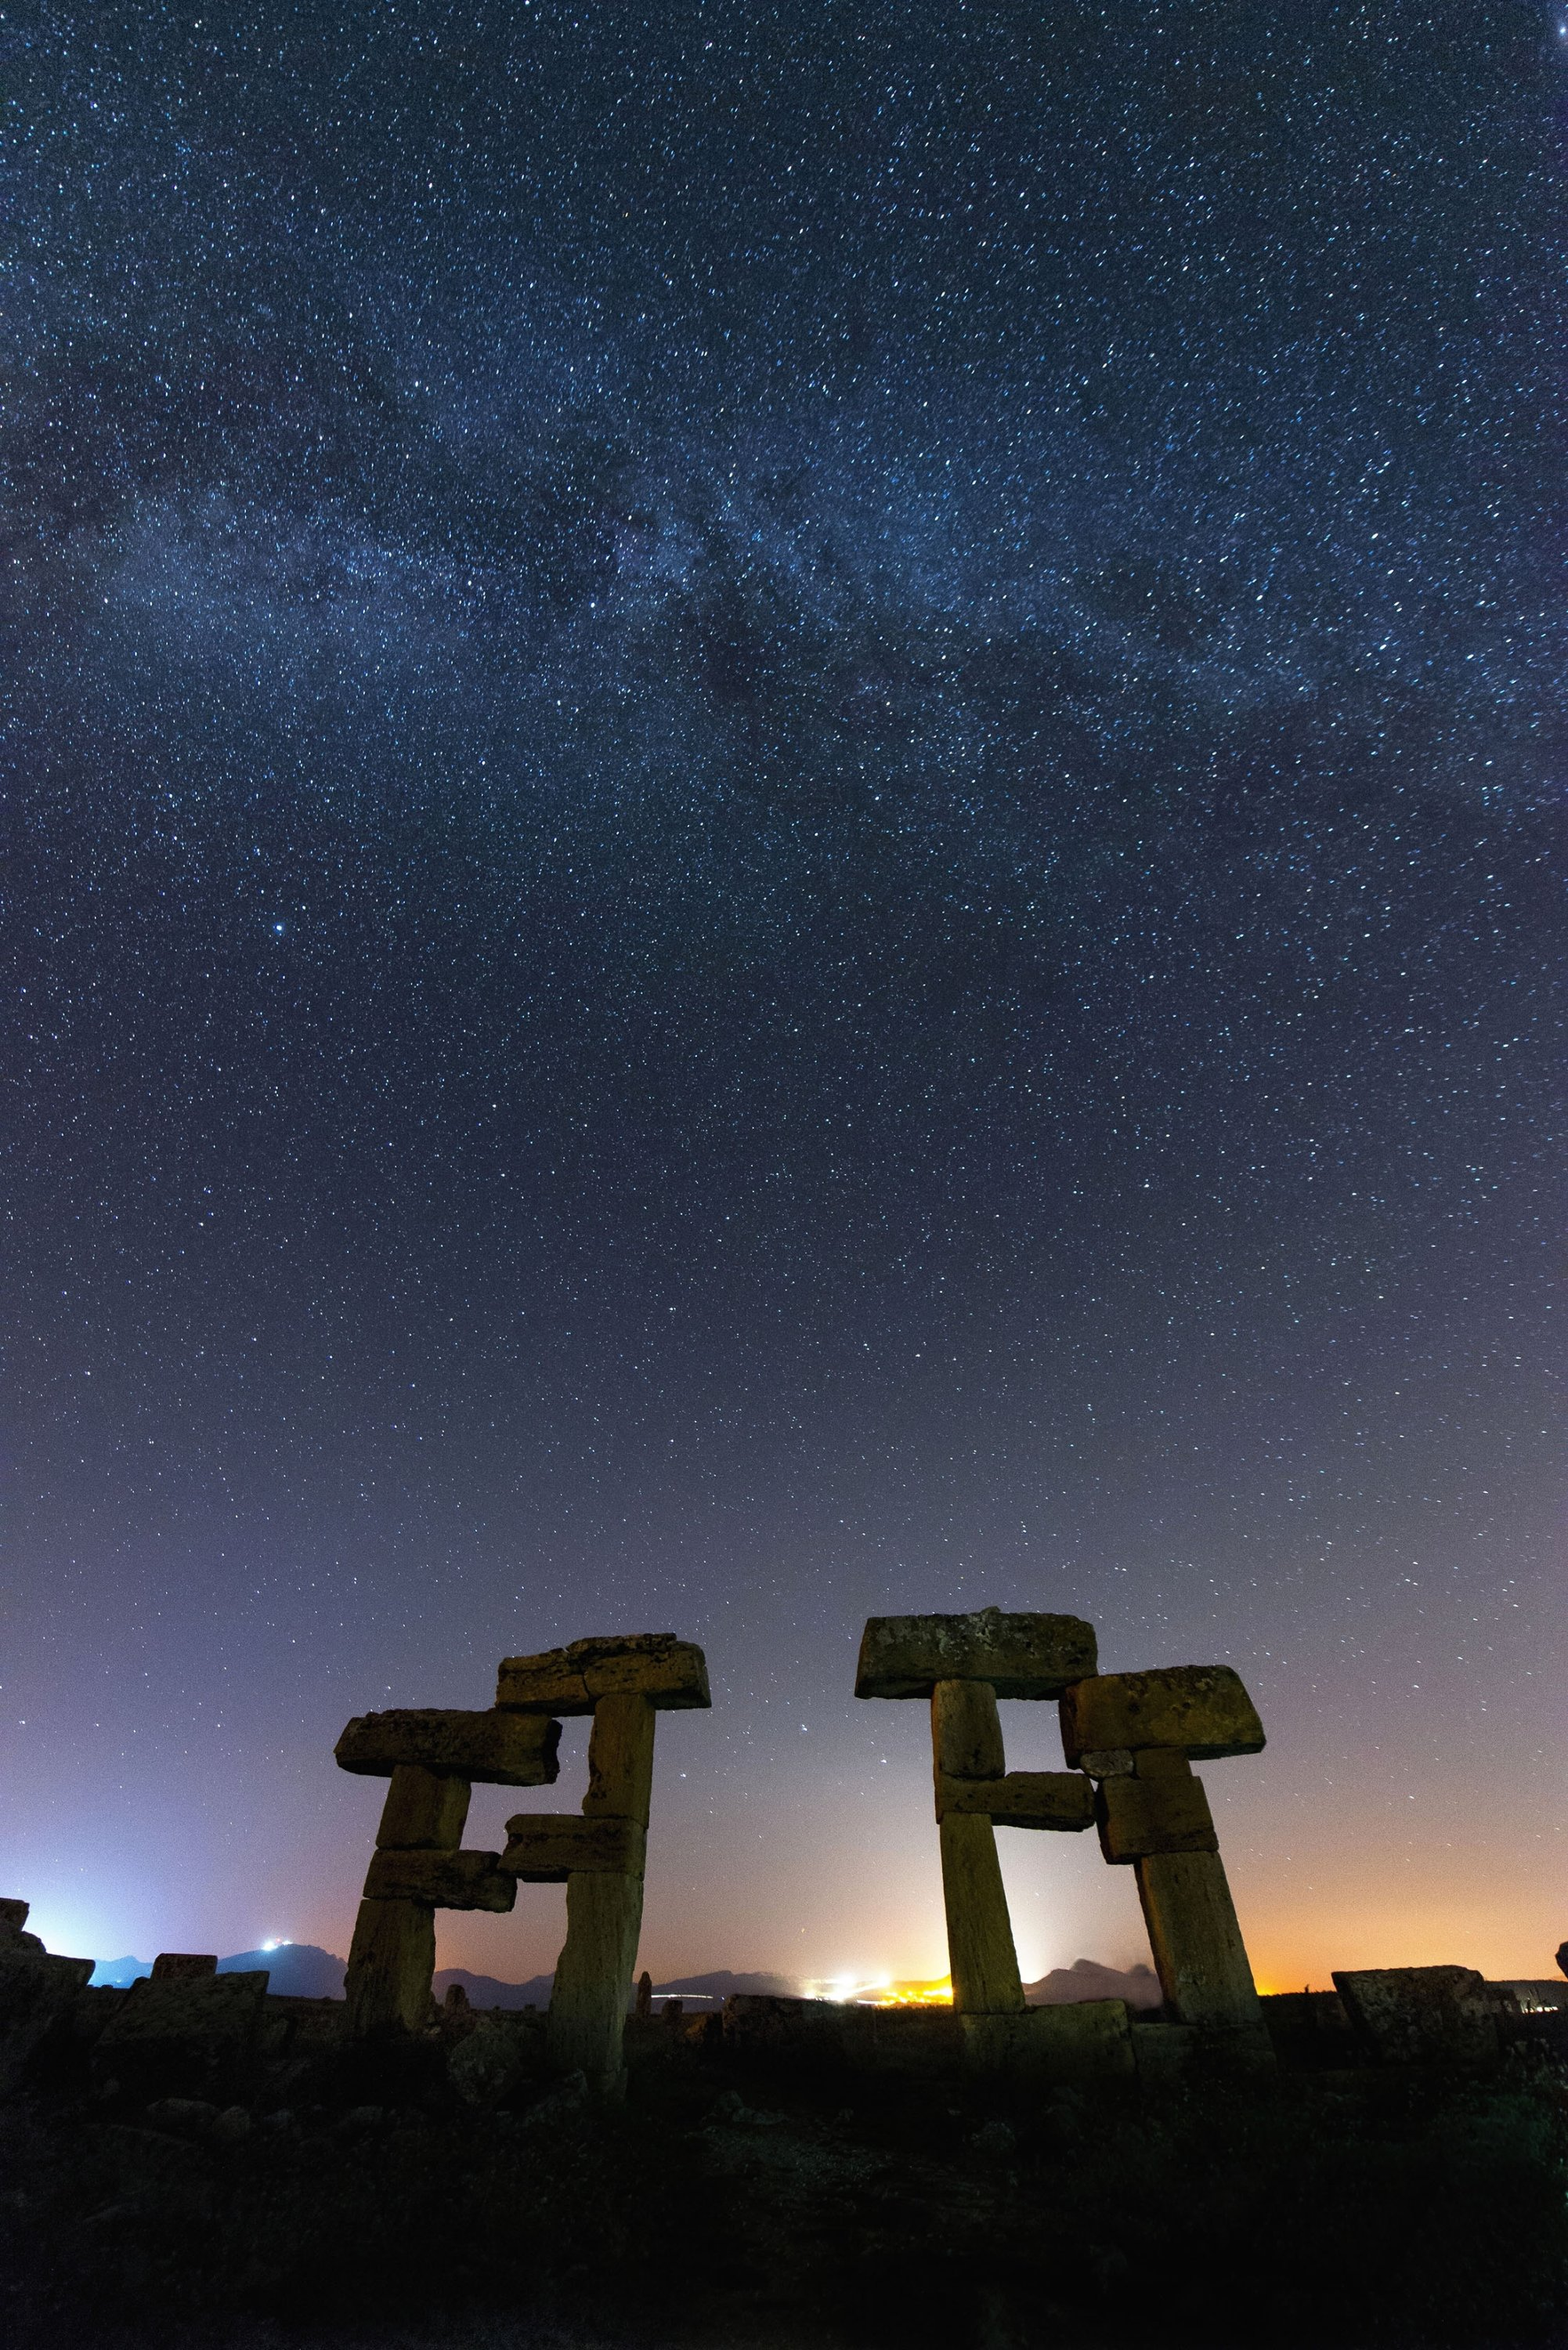 Astronomy photographers frequent the ancient city of Blaundus for its mesmerizing views, Uşak, western Turkey. (Shutterstock Photo)